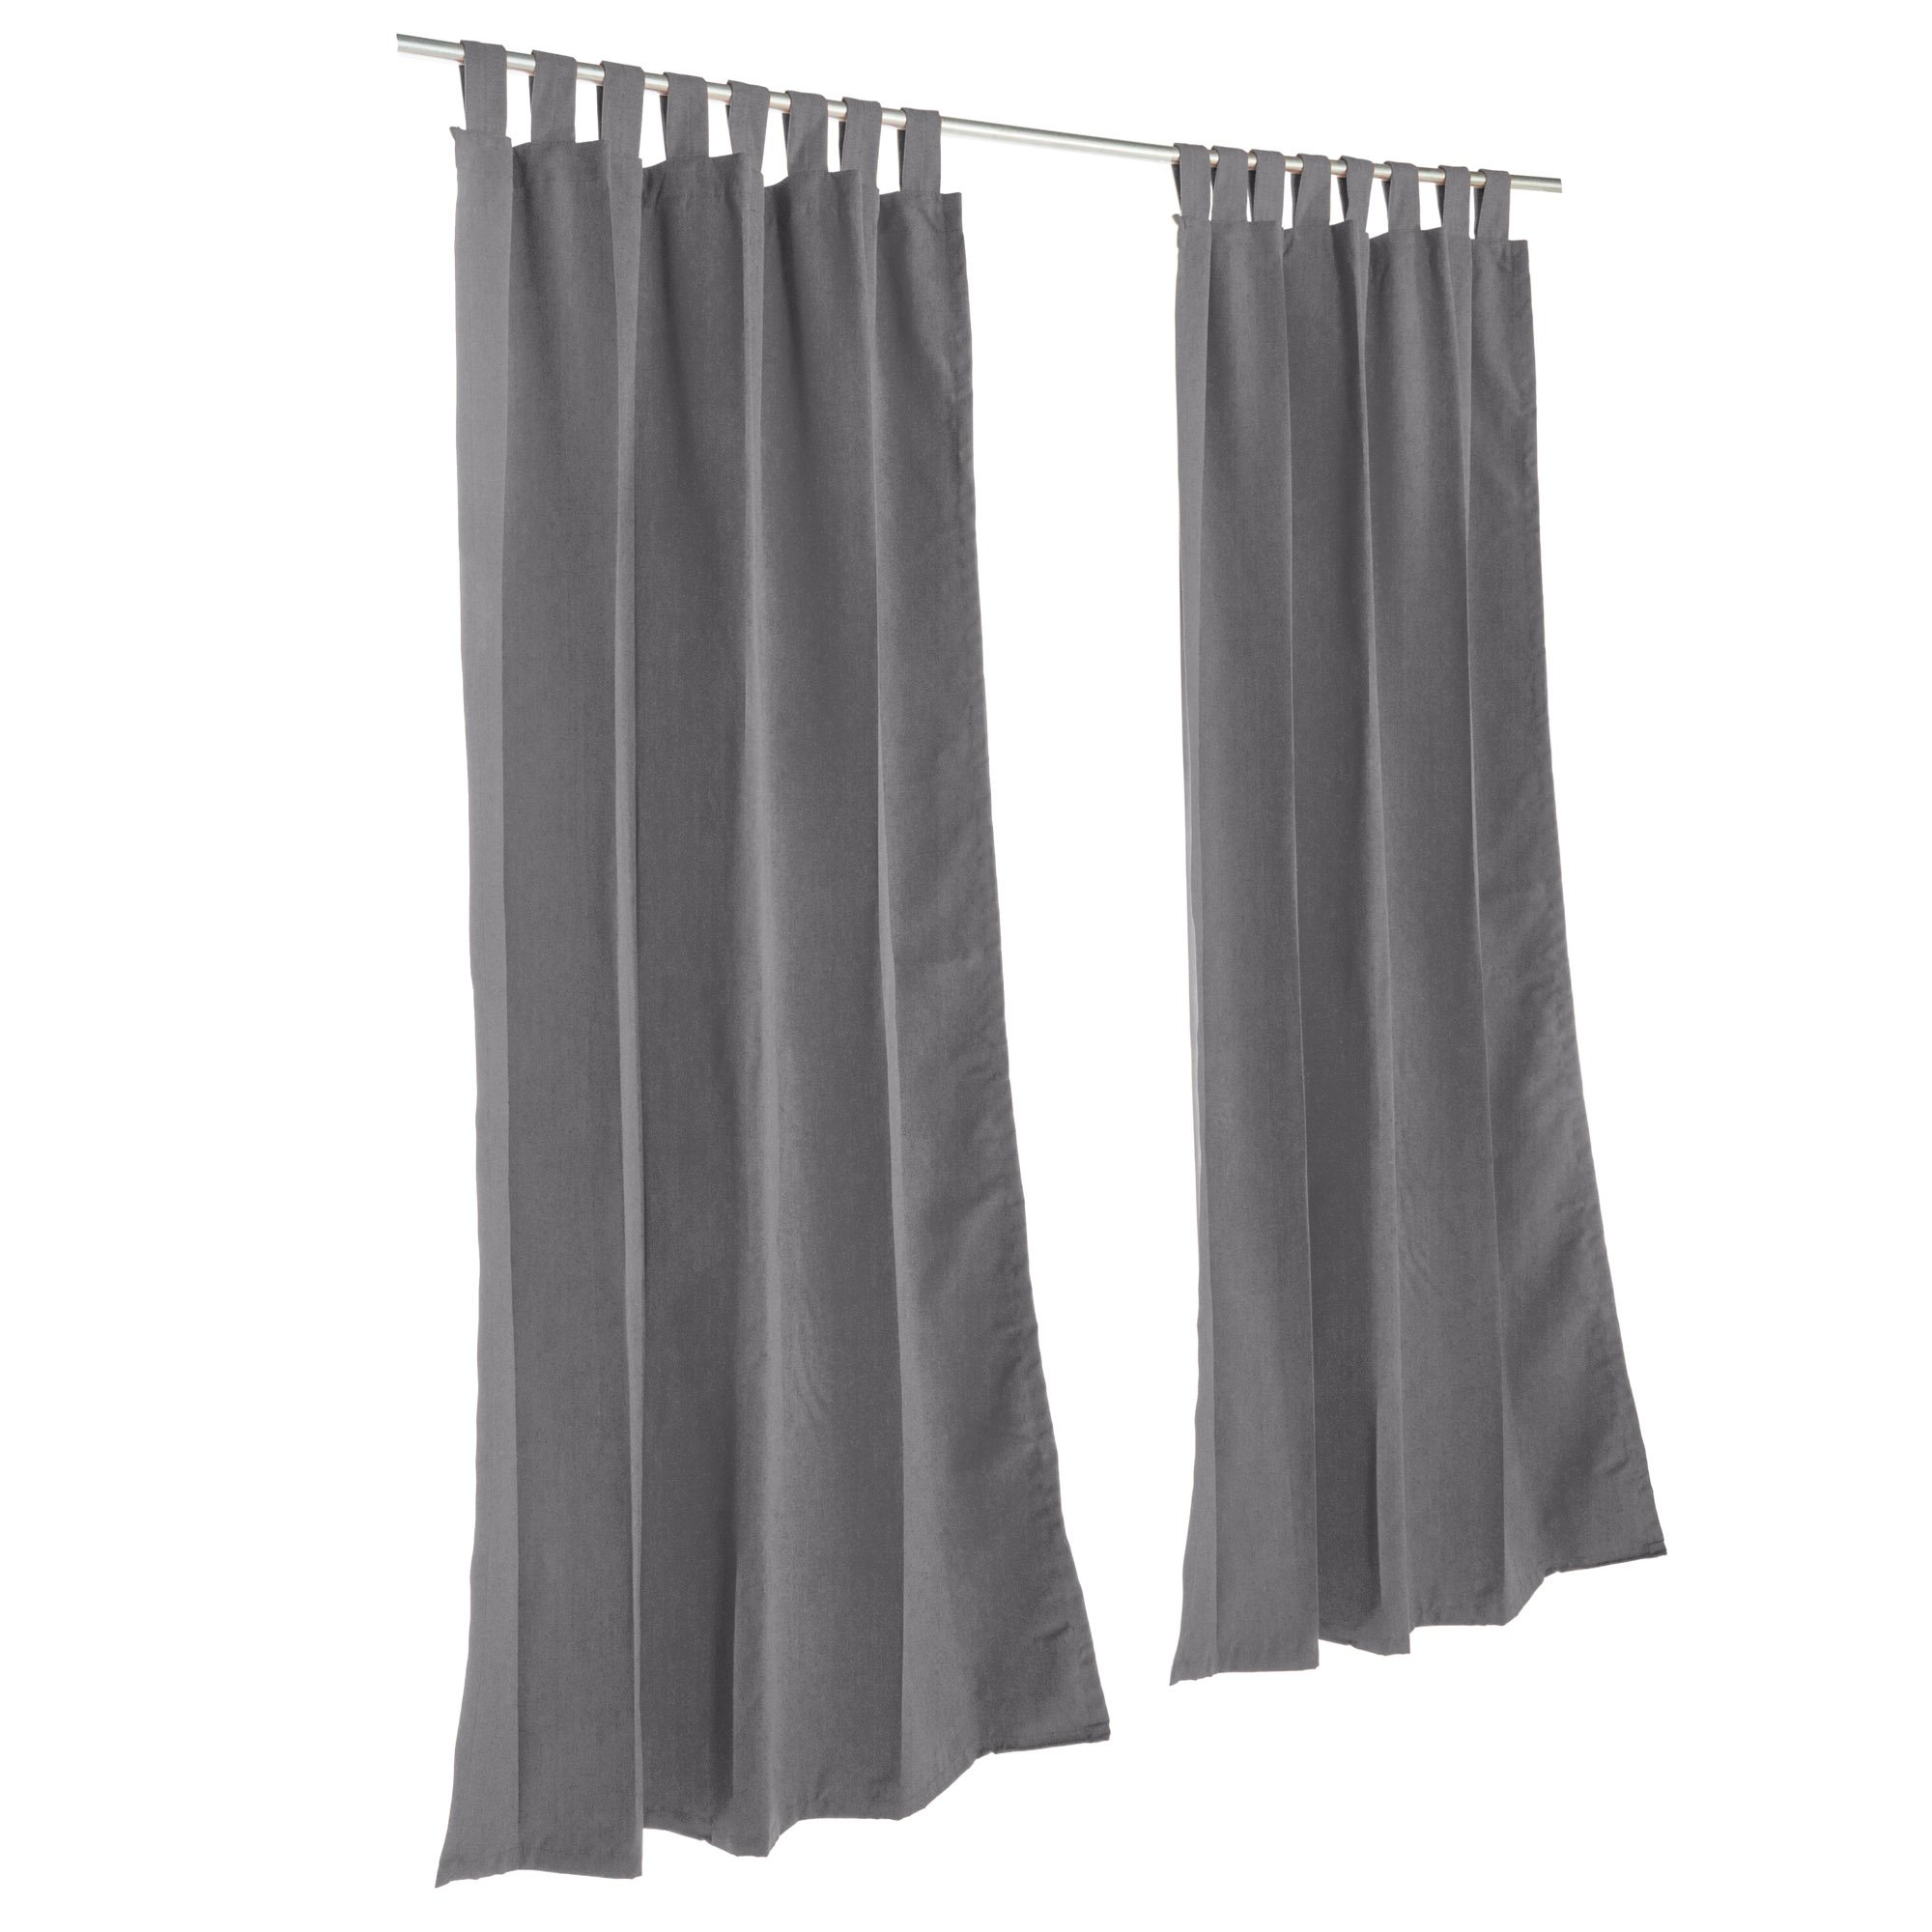 Essentials by DFO Charcoal Sunbrella outdoor curtain with tabs 108 long